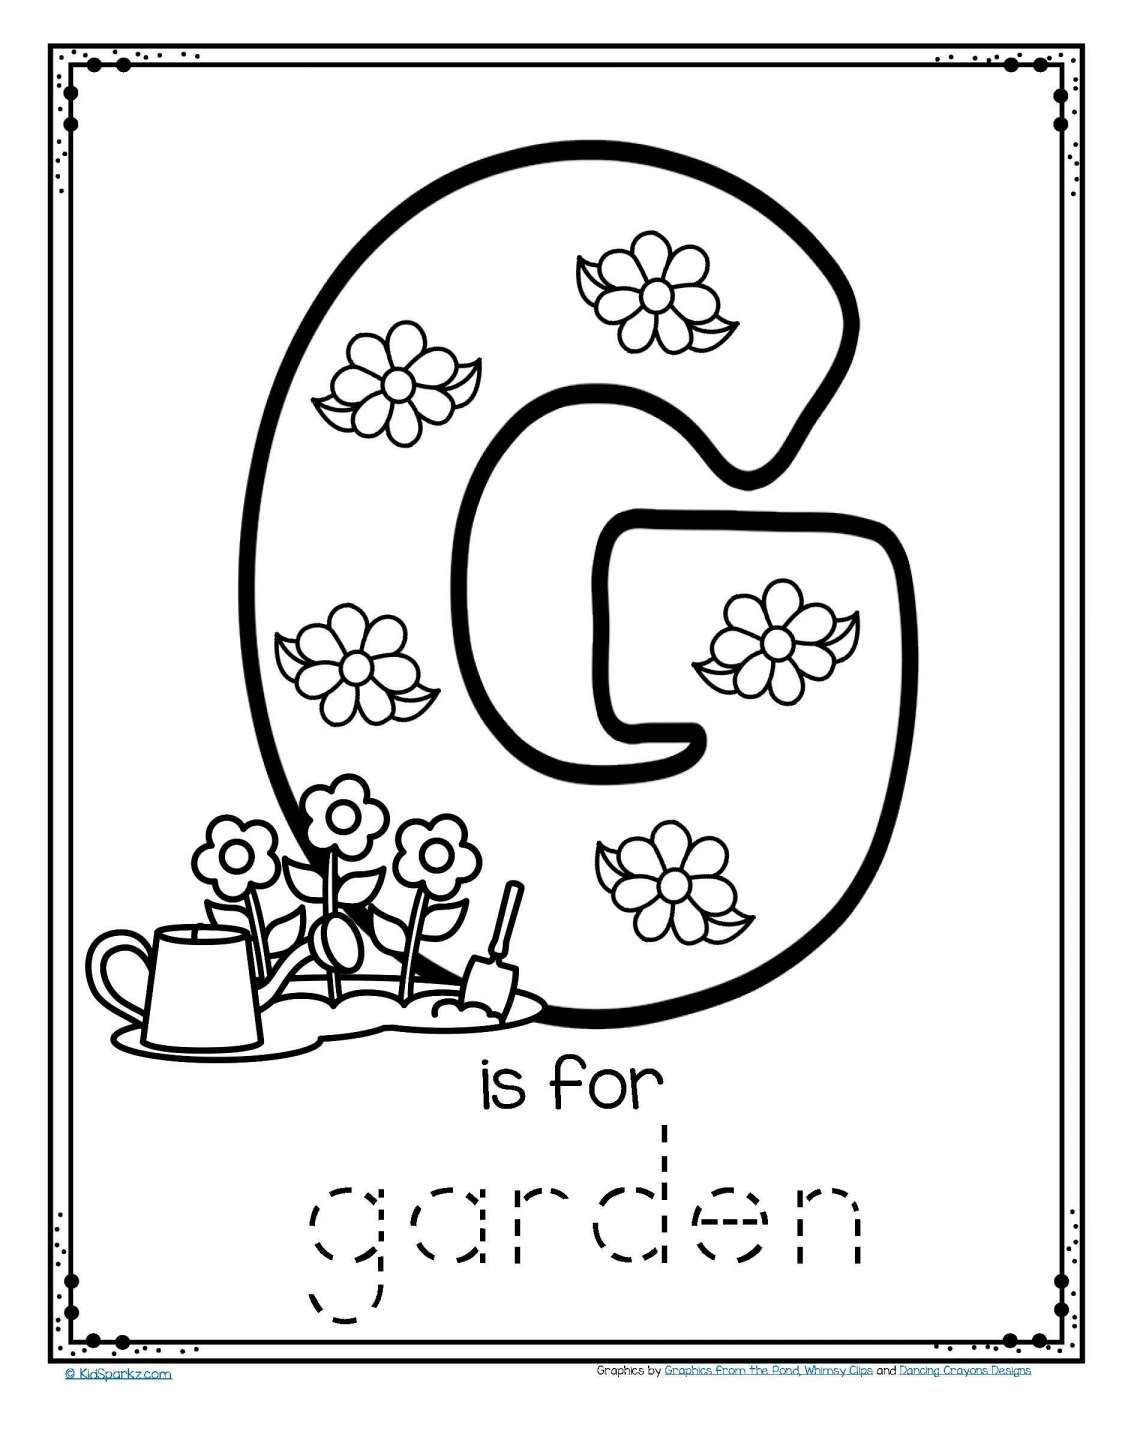 Preschool Letter G Worksheets 7 Preschool Letter G Garden Worksheet Garden Letter